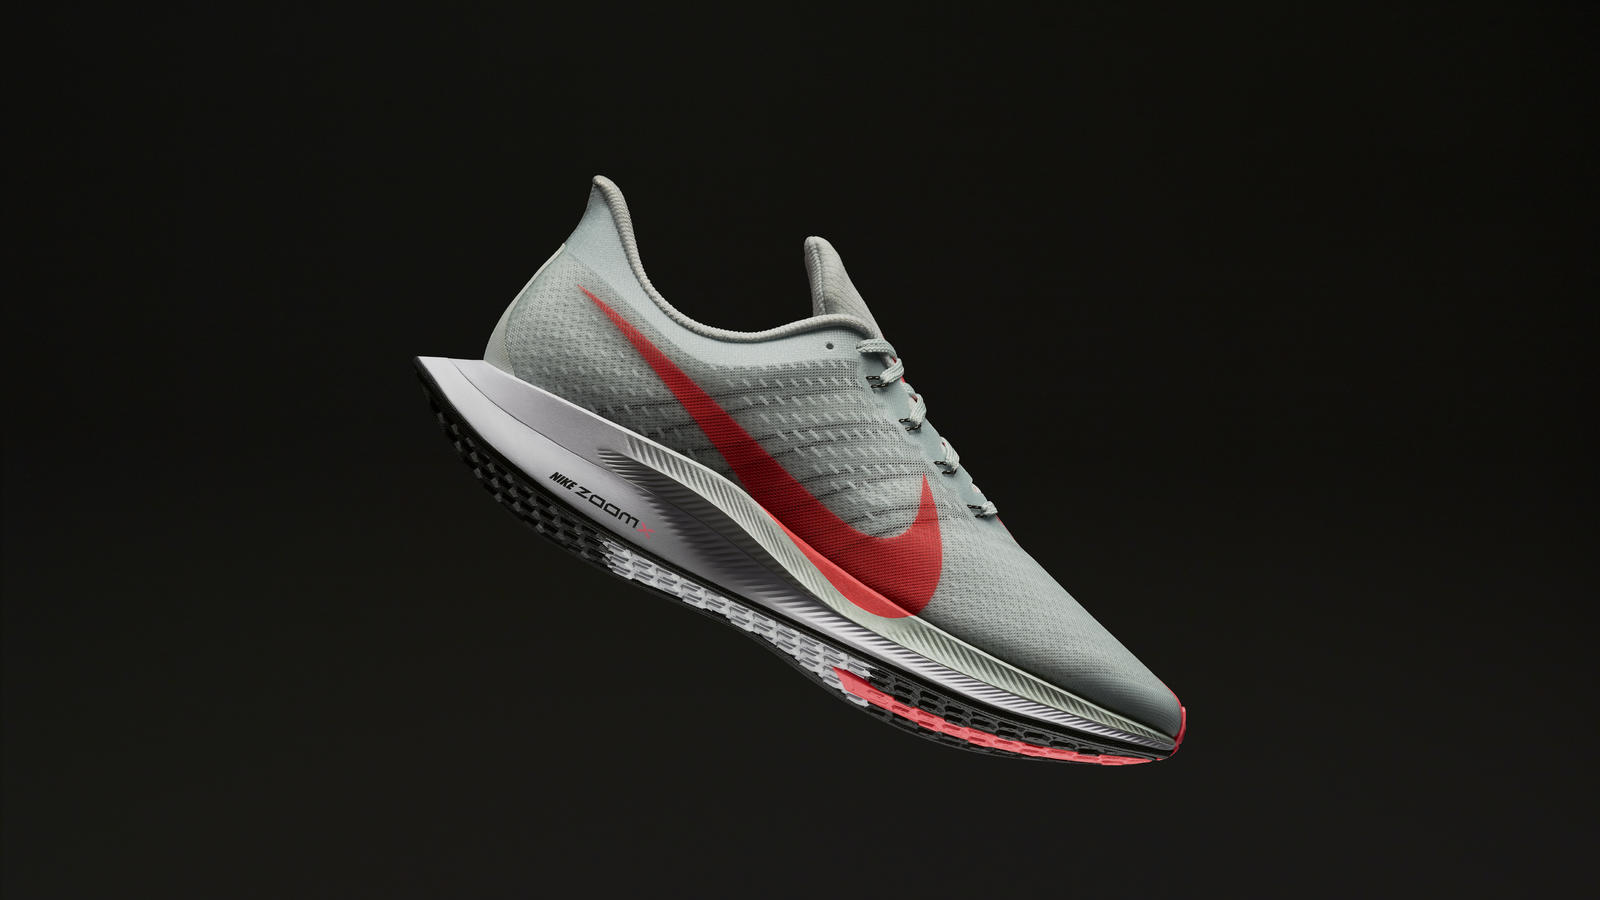 c99950115e87c6 Nike Zoom Pegasus Turbo - Nike News